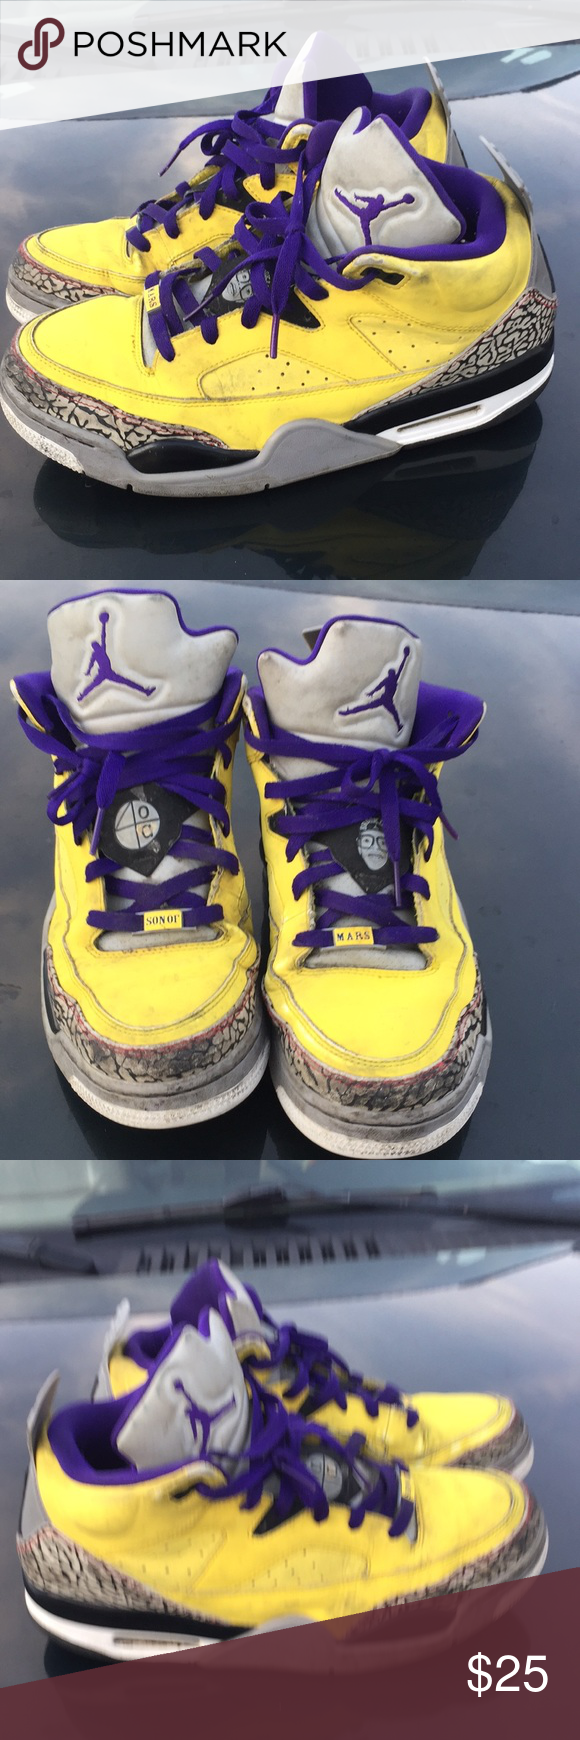 new products 3c053 cf211 NIKE AIR JORDAN SON OF LOW YELLOWGRAPECEMENT GREY NIKE AIR JORDAN SON OF LOW  TOUR YELLOW